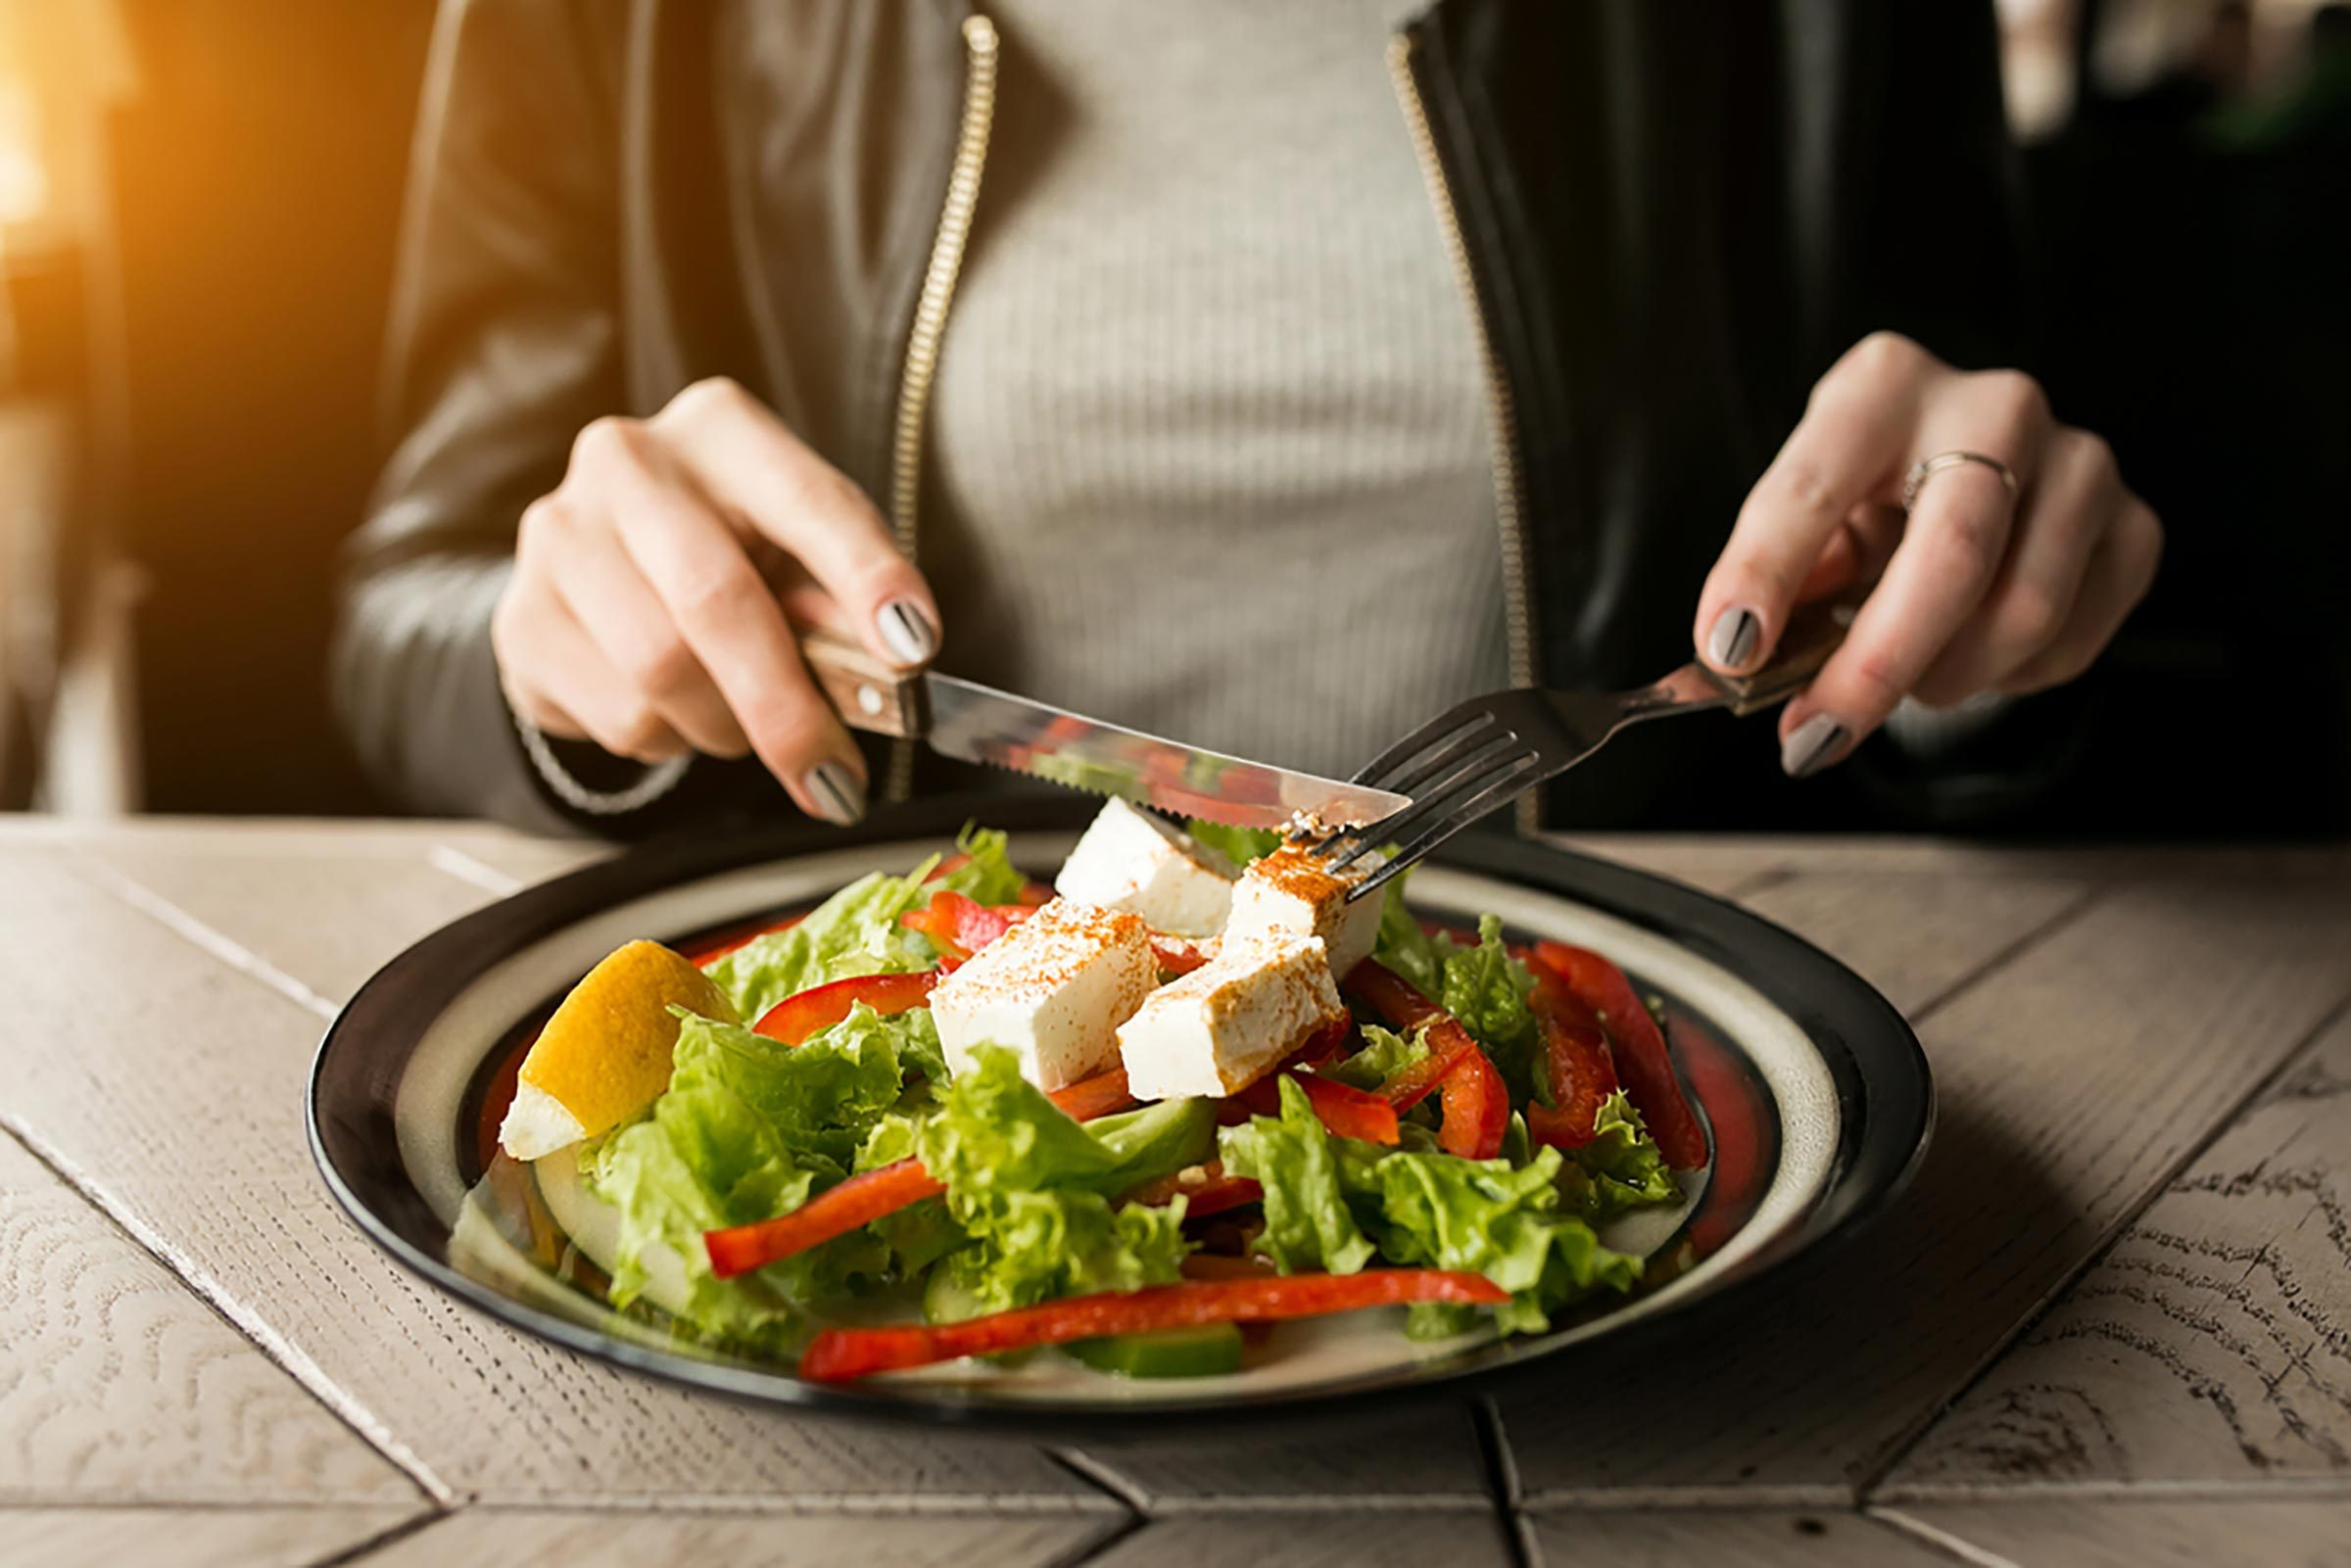 A woman eating a salad with a fork and knife at an outdoor table.